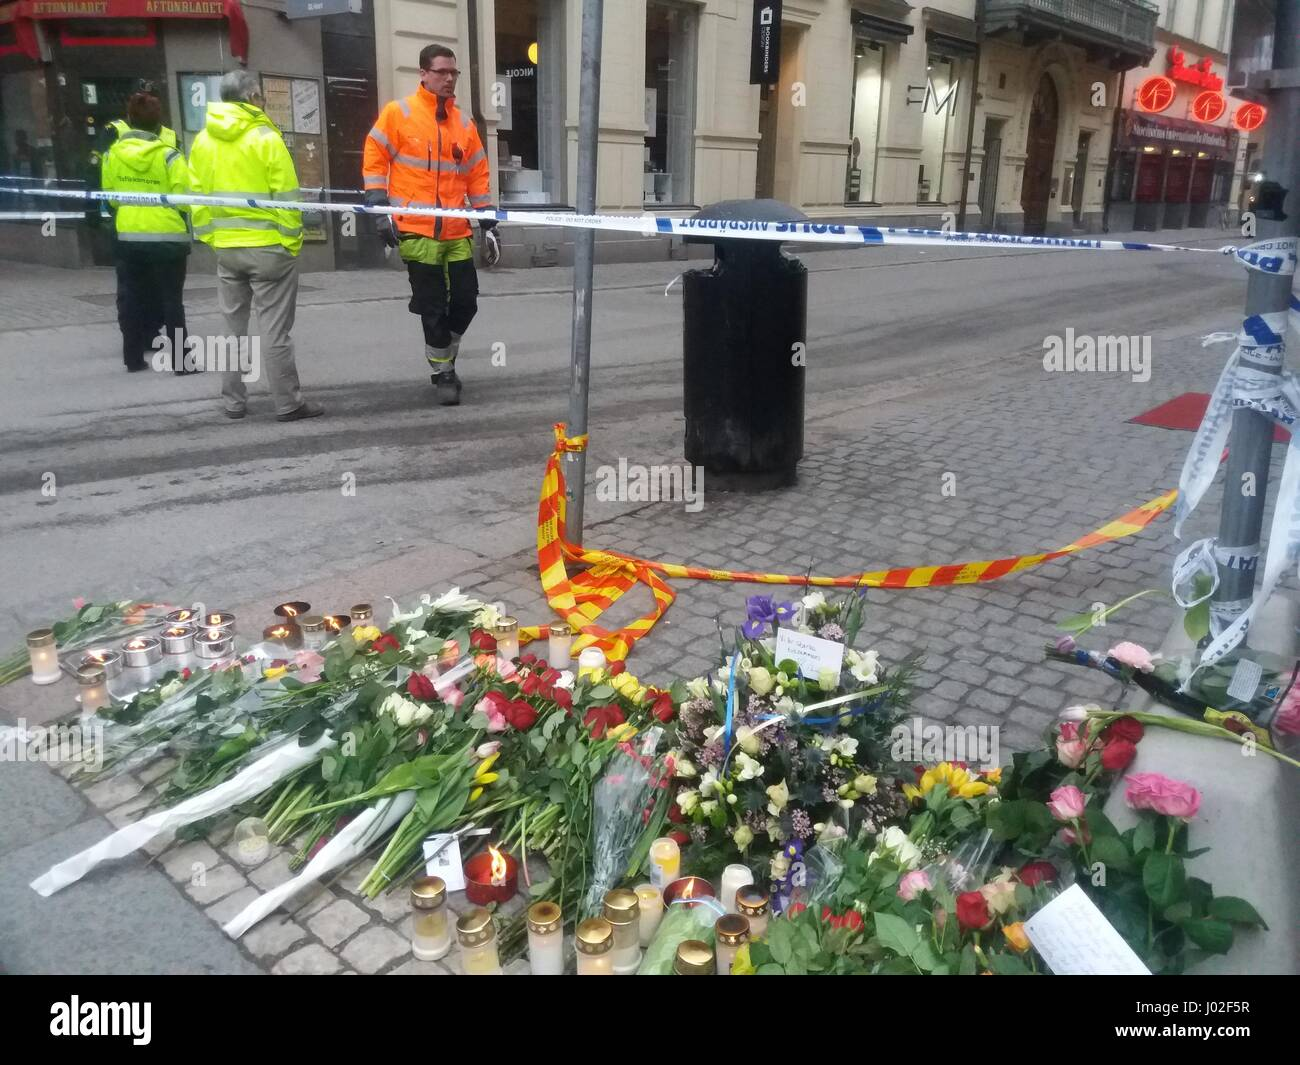 Swedish Polis officers guarding part of a crash scene, in central Stockholm where the high-speed truck terrorist - Stock Image